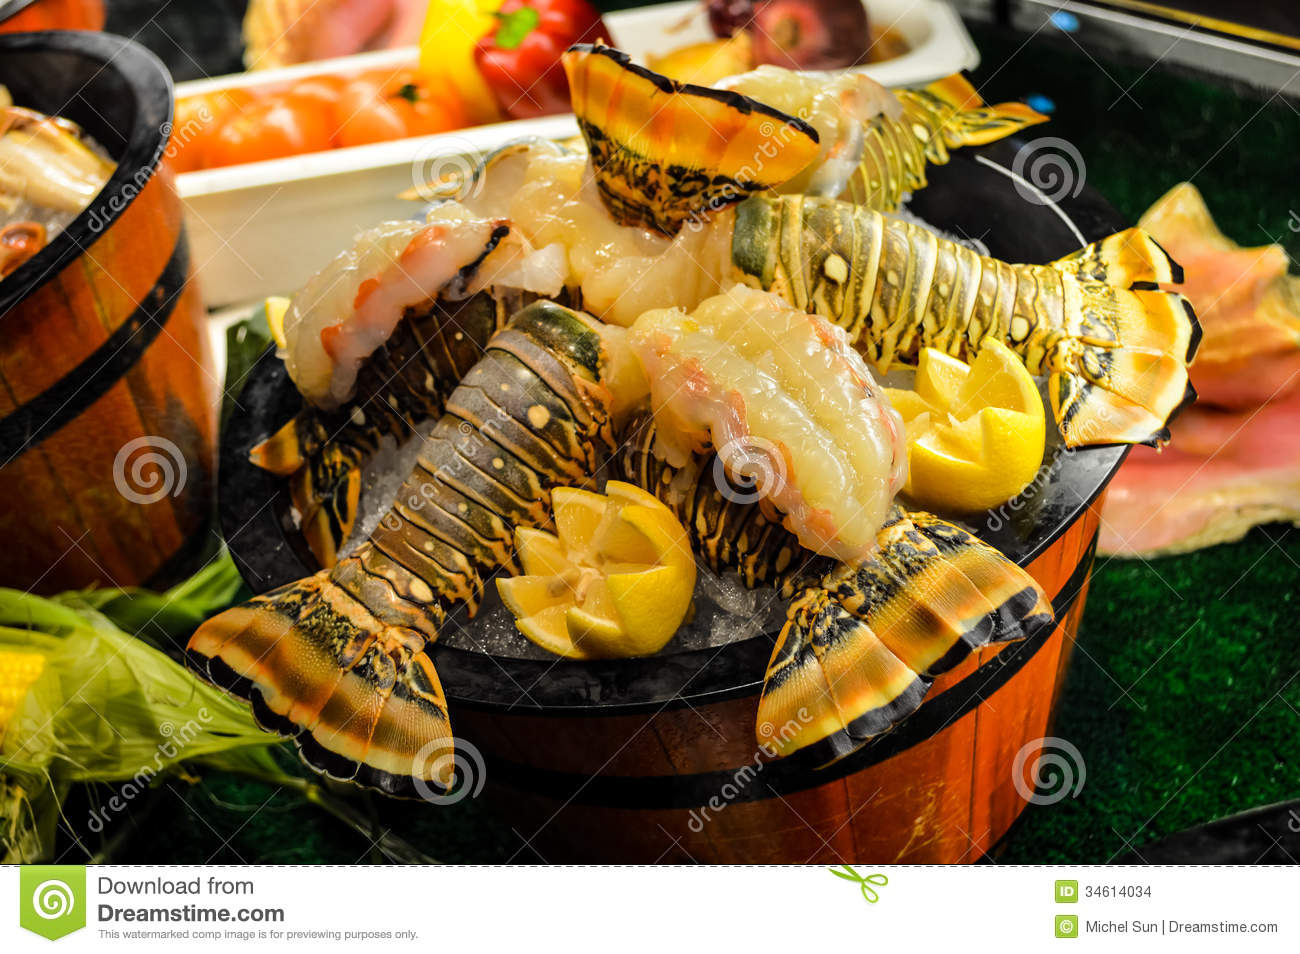 Delicious Seafood Platters Stock Images - Image: 34614034